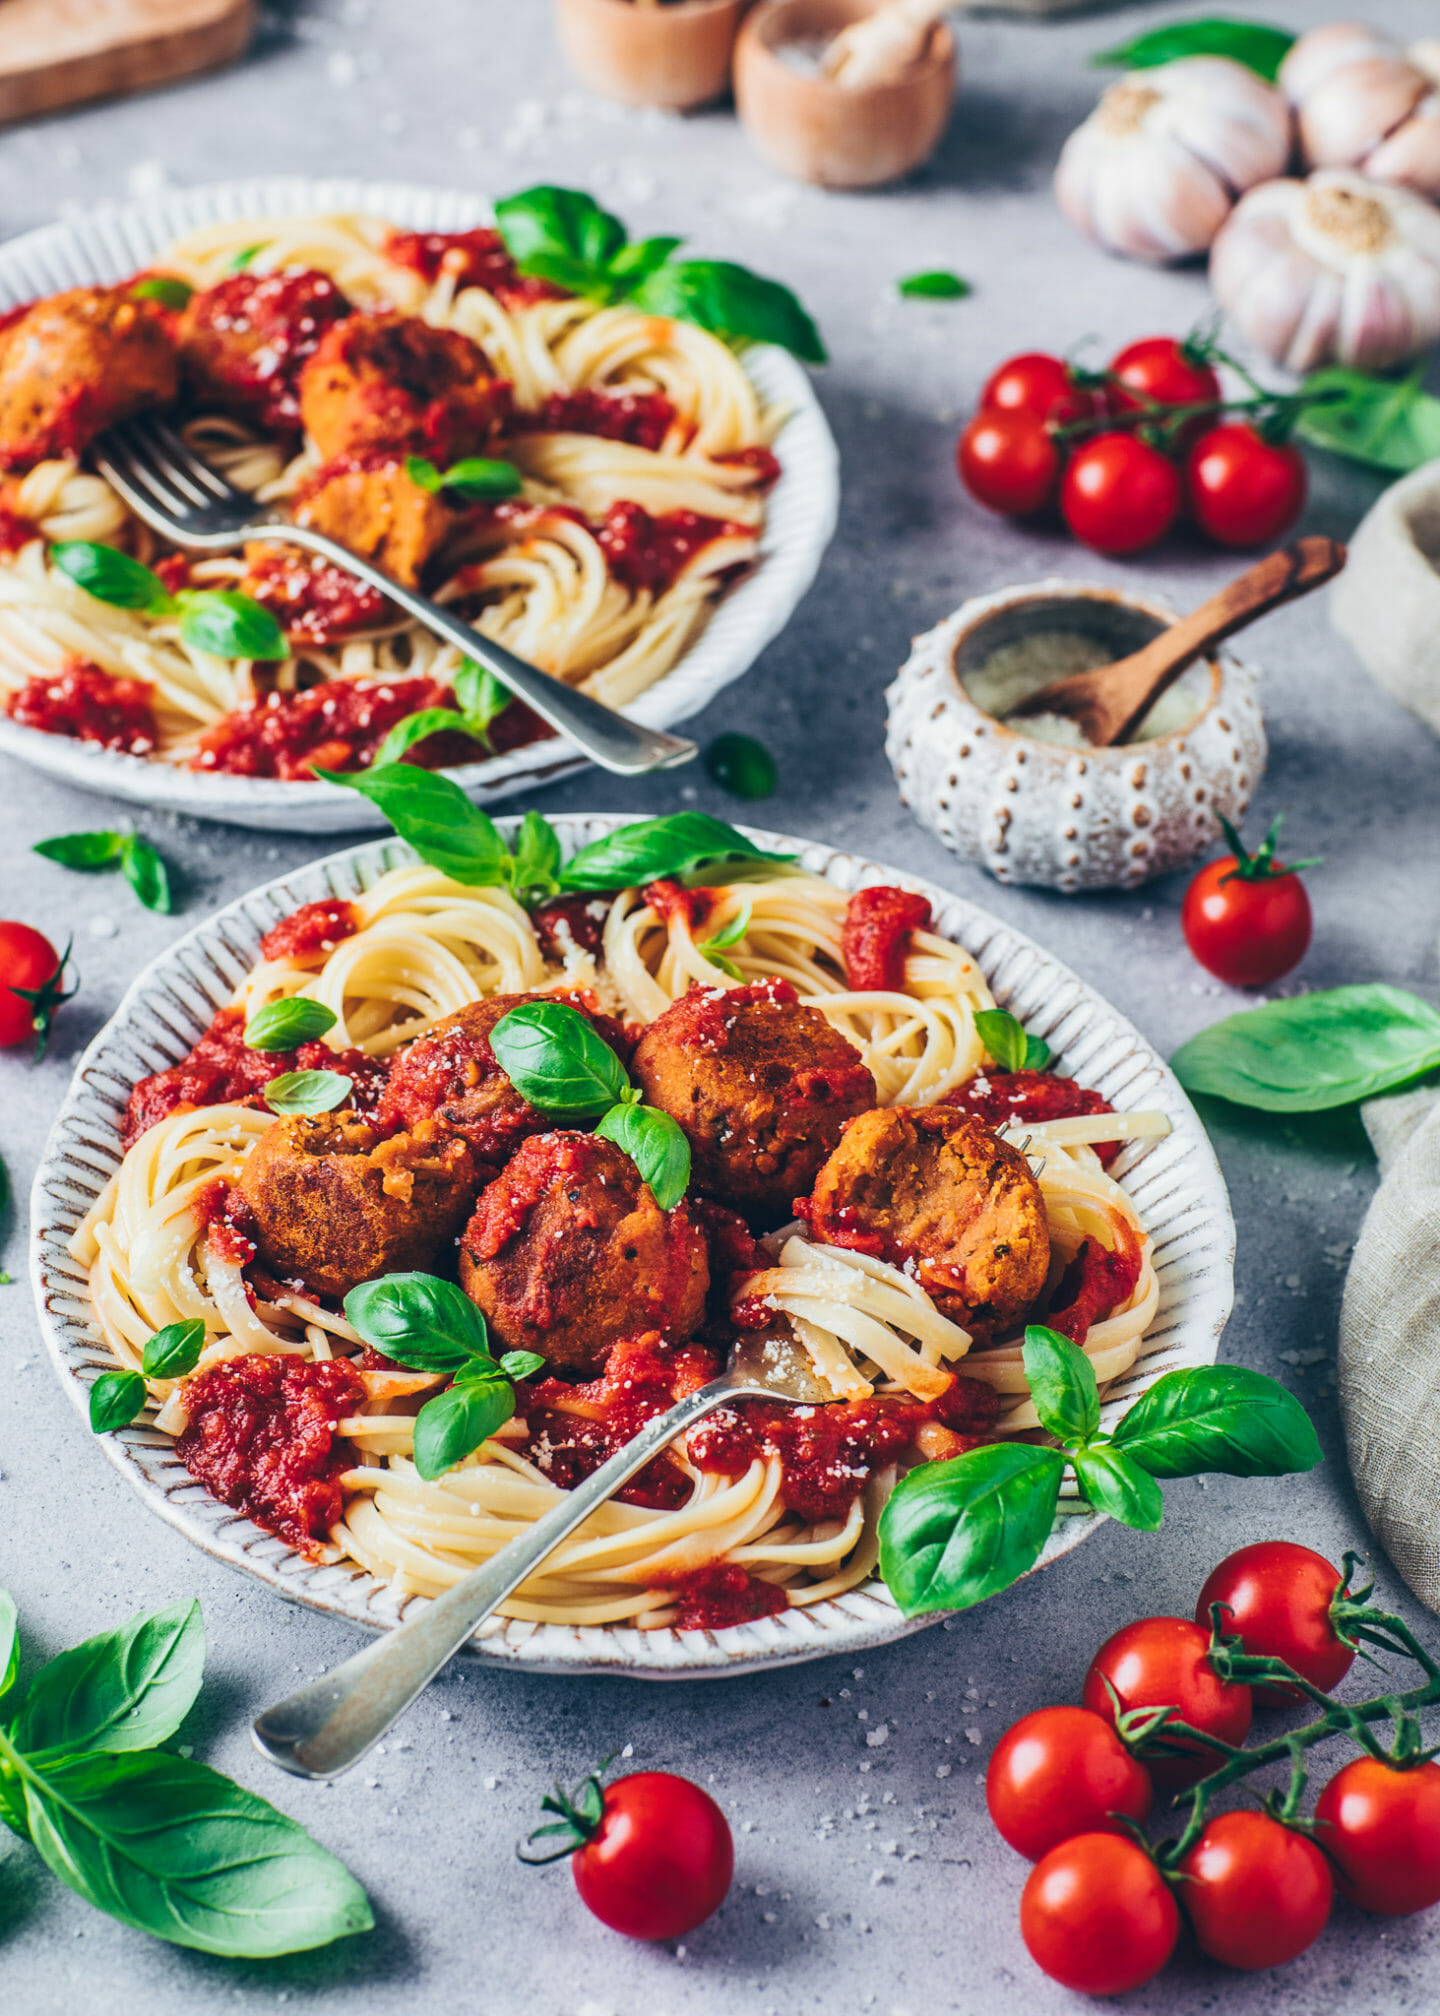 spaghetti with vegan meatballs and tomato sauce